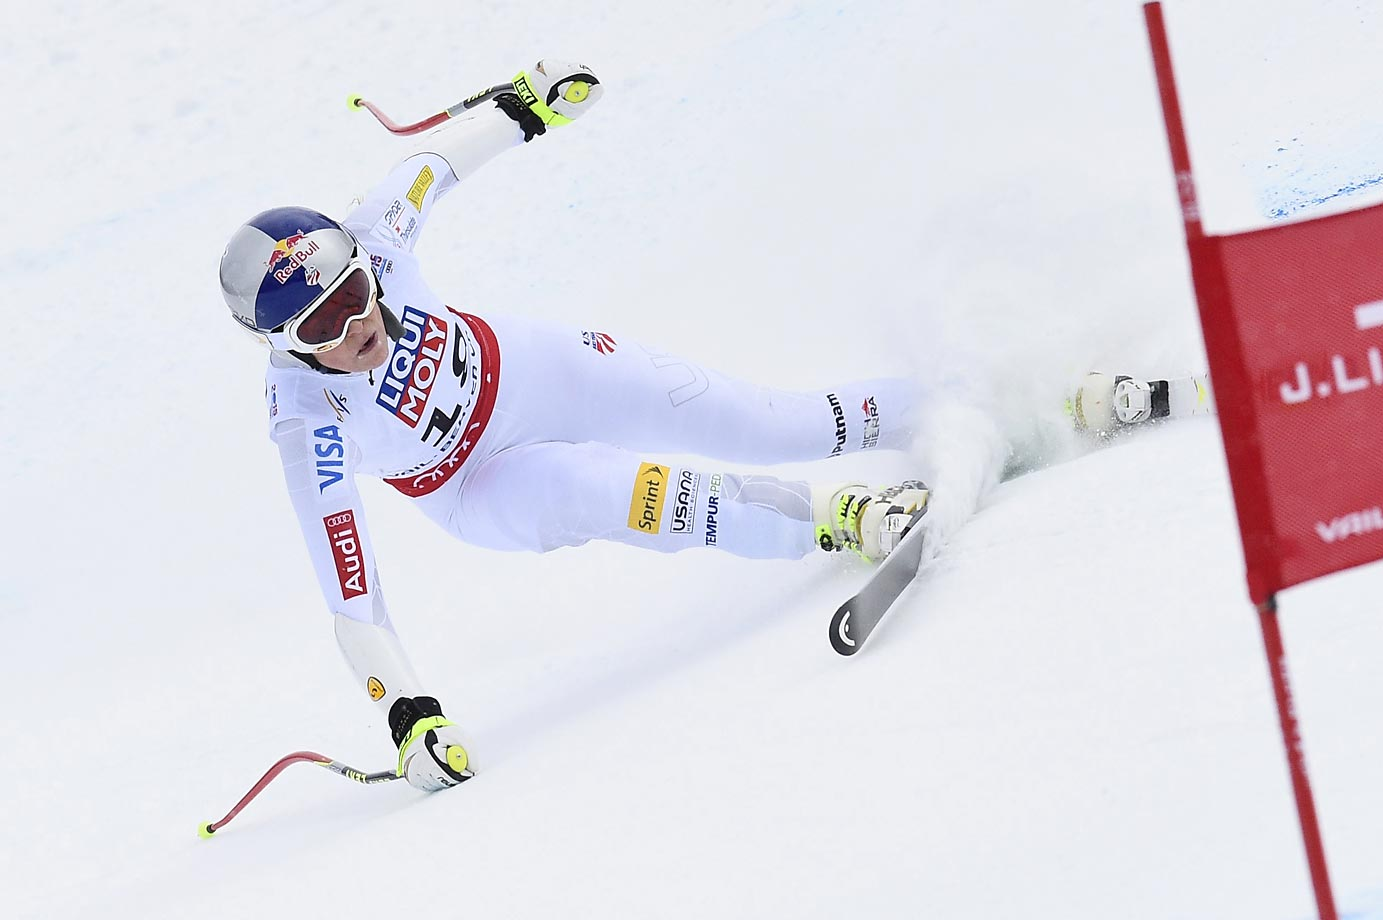 Lindsey Vonn won a bronze medal in the FIS Alpine World Ski Championships Super G.